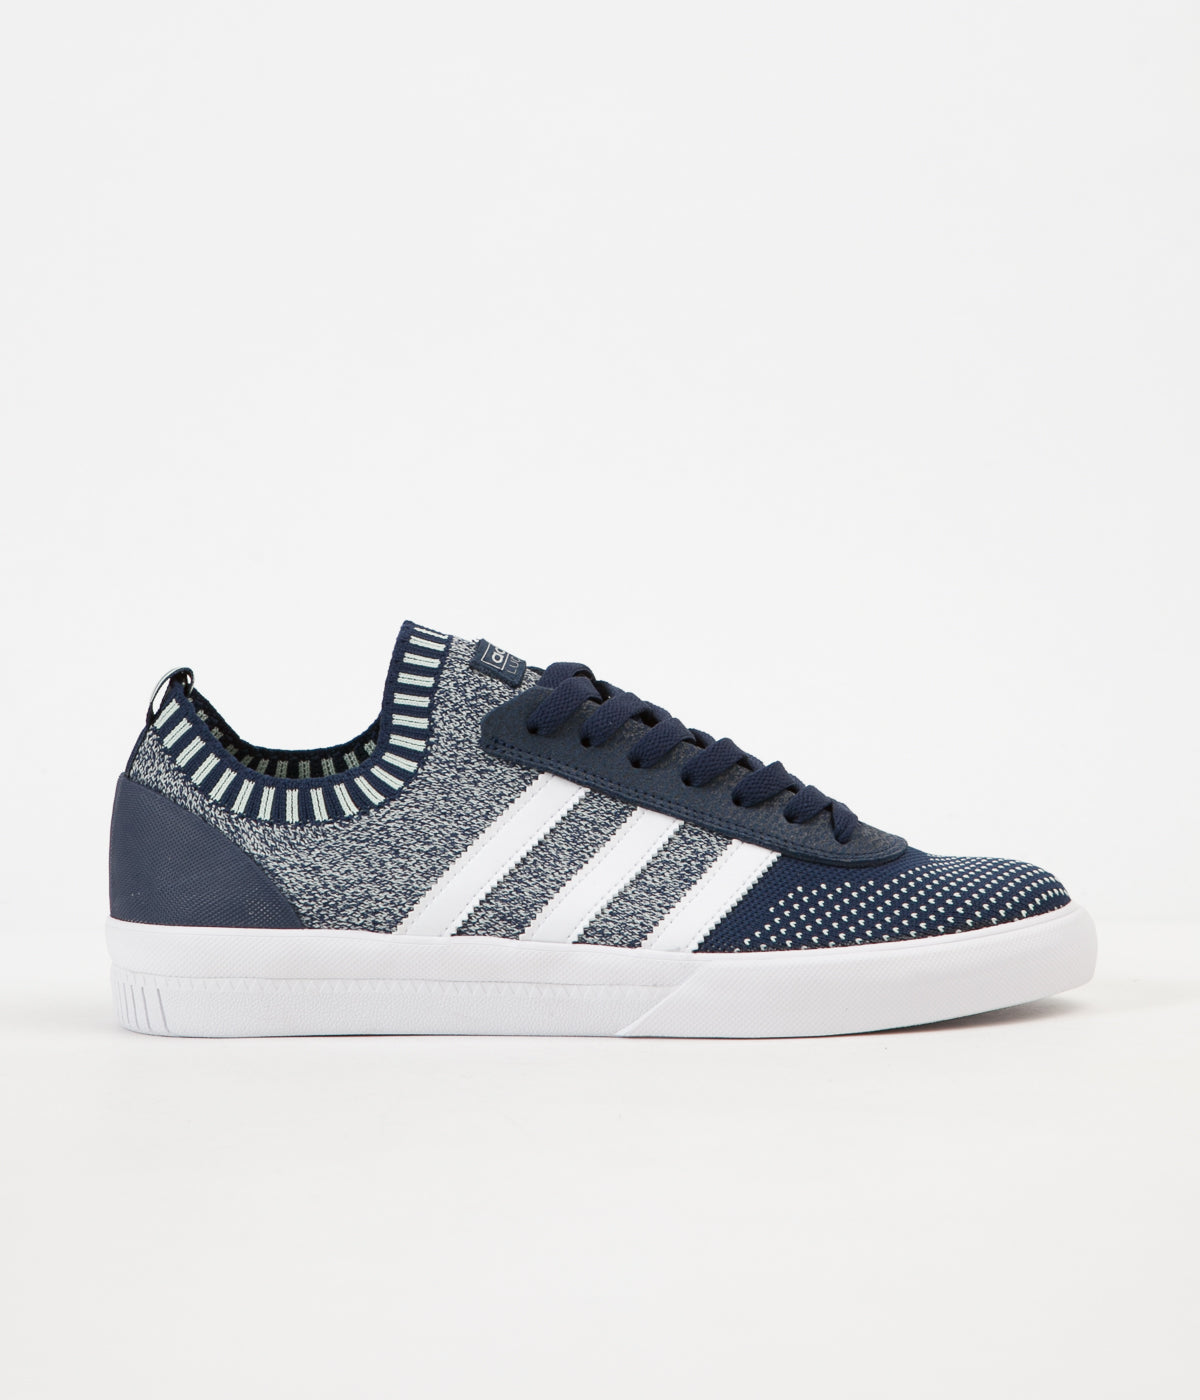 Adidas Lucas Premiere Primeknit Shoes - Collegiate Navy / White / Aero Green